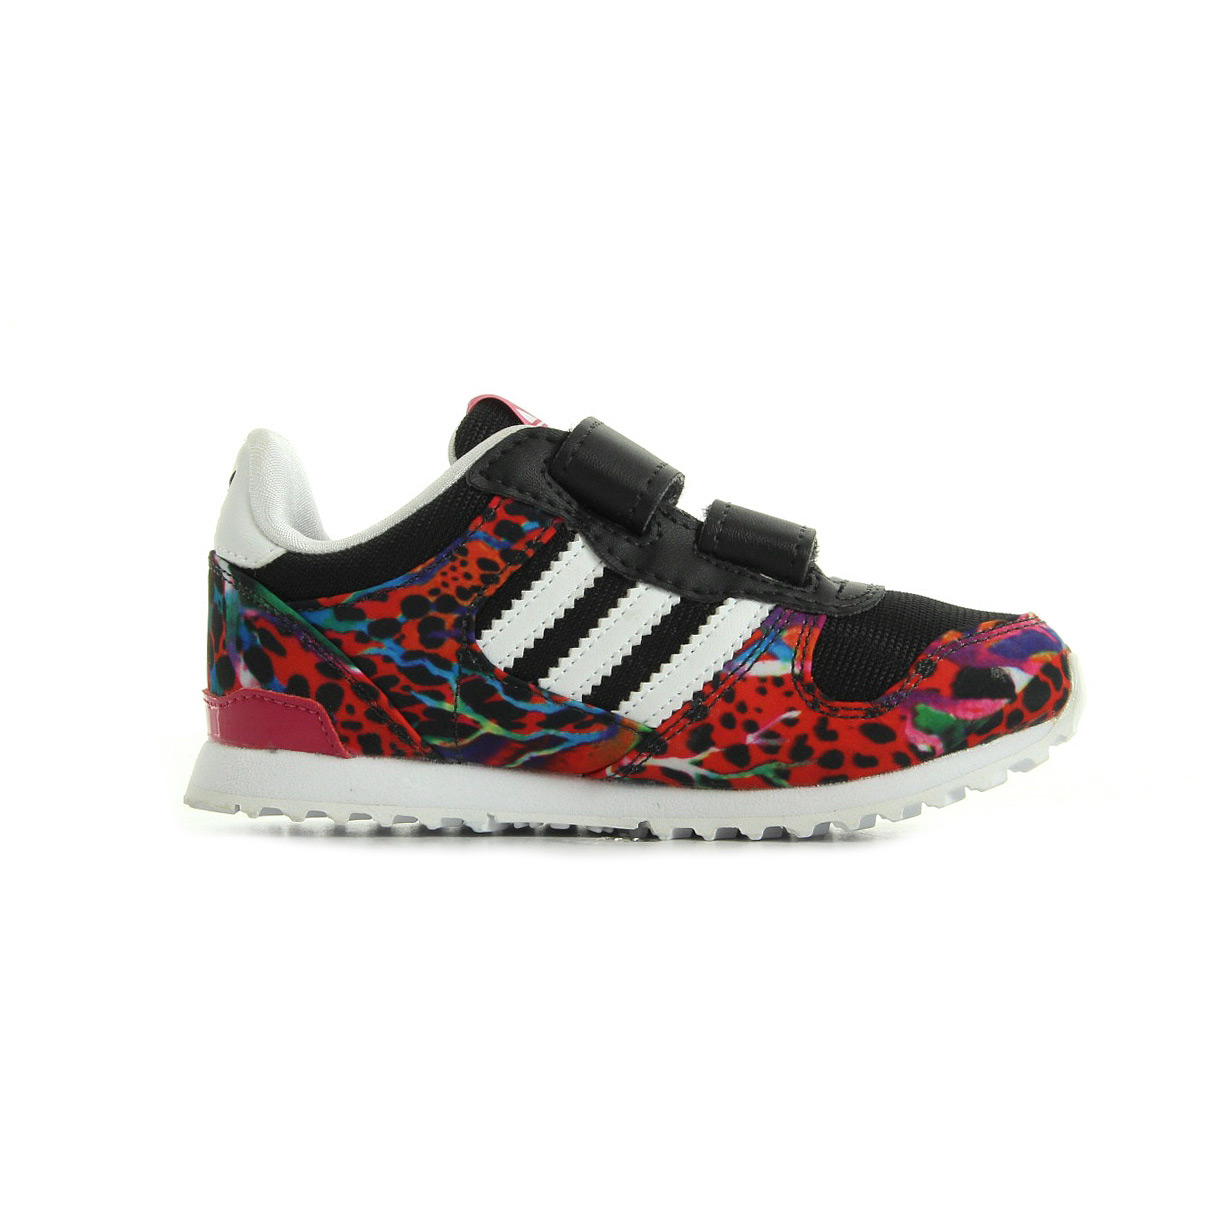 schuhe adidas m dchen zx 700 cf i schwarz ebay. Black Bedroom Furniture Sets. Home Design Ideas